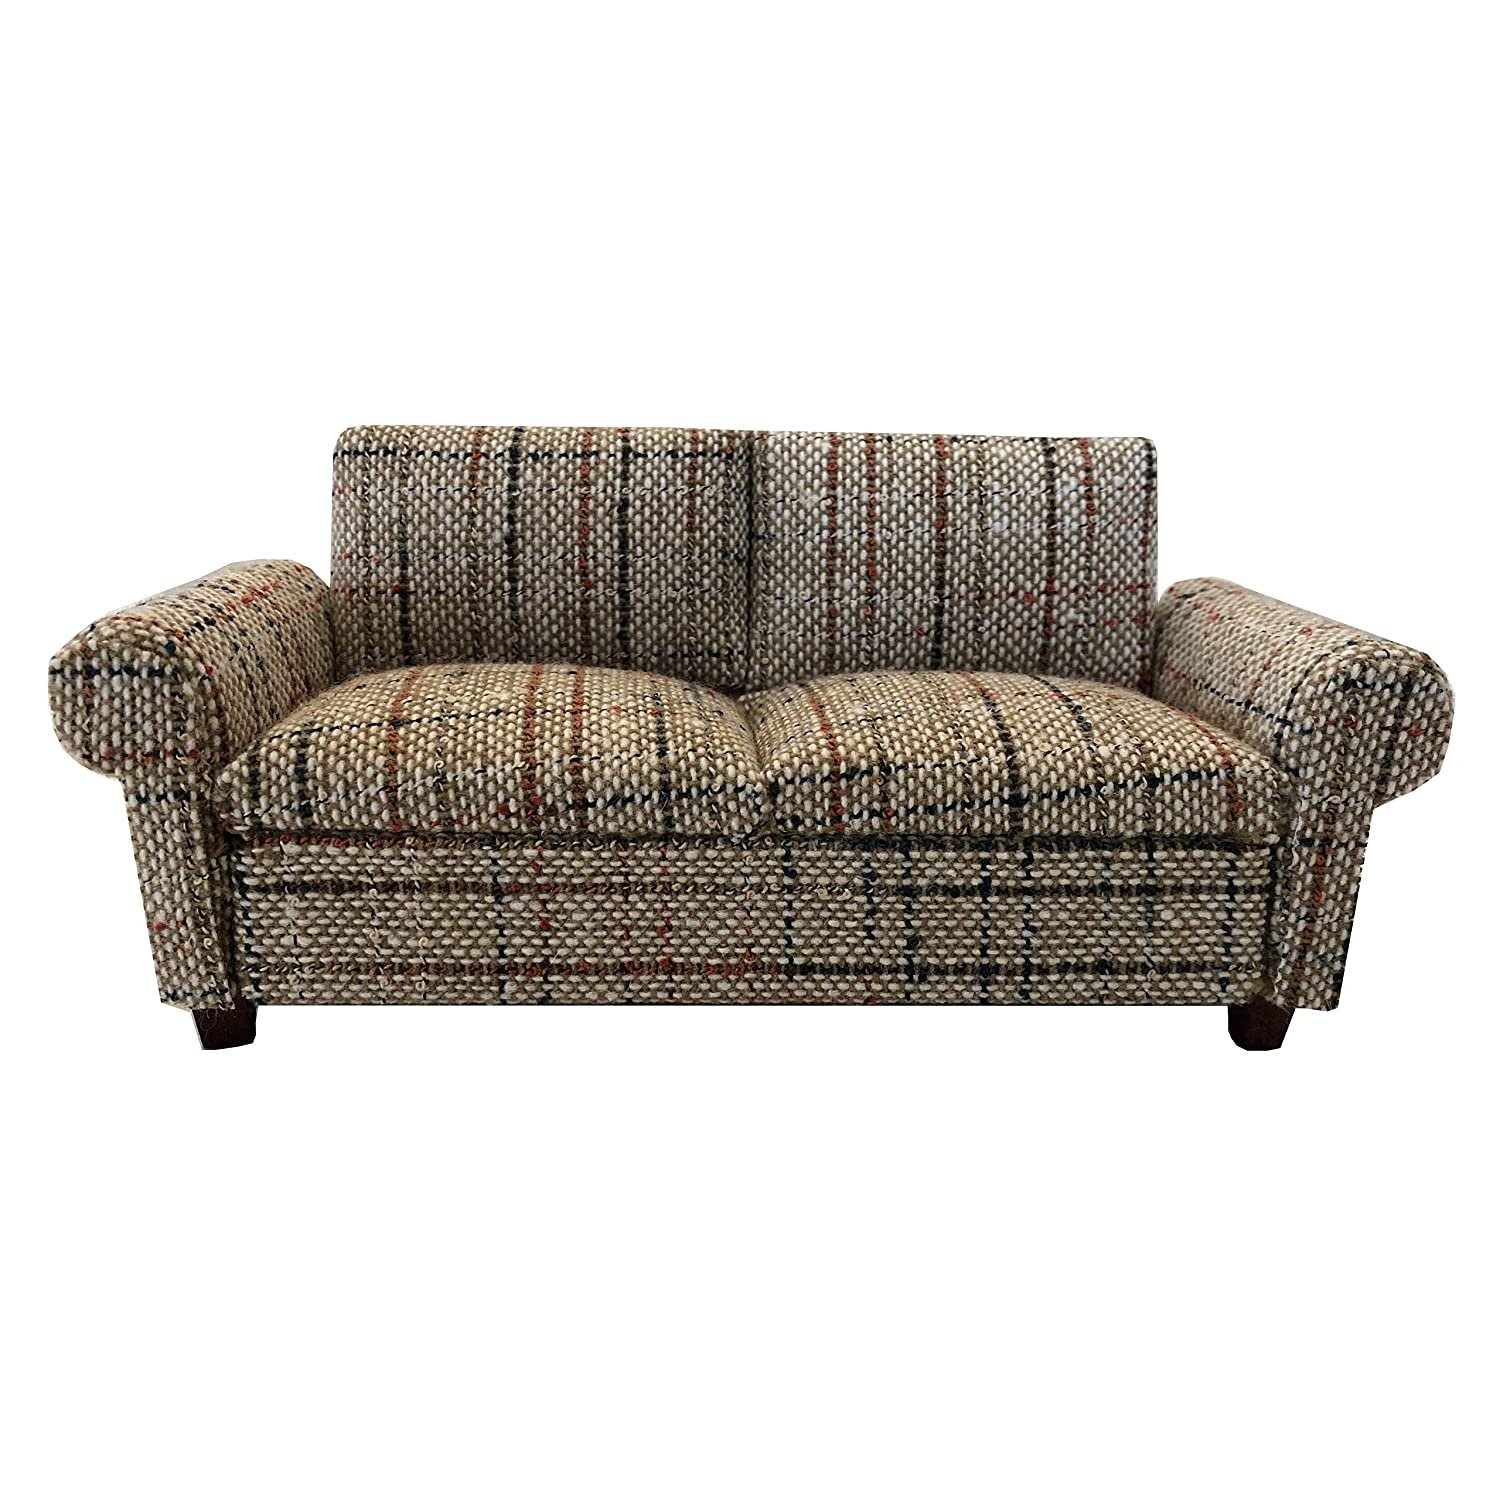 Inusitus Miniature Dollhouse Sofa - Dolls House Furniture Couch Loveseat- 1/12 Scale (Pattern 1)